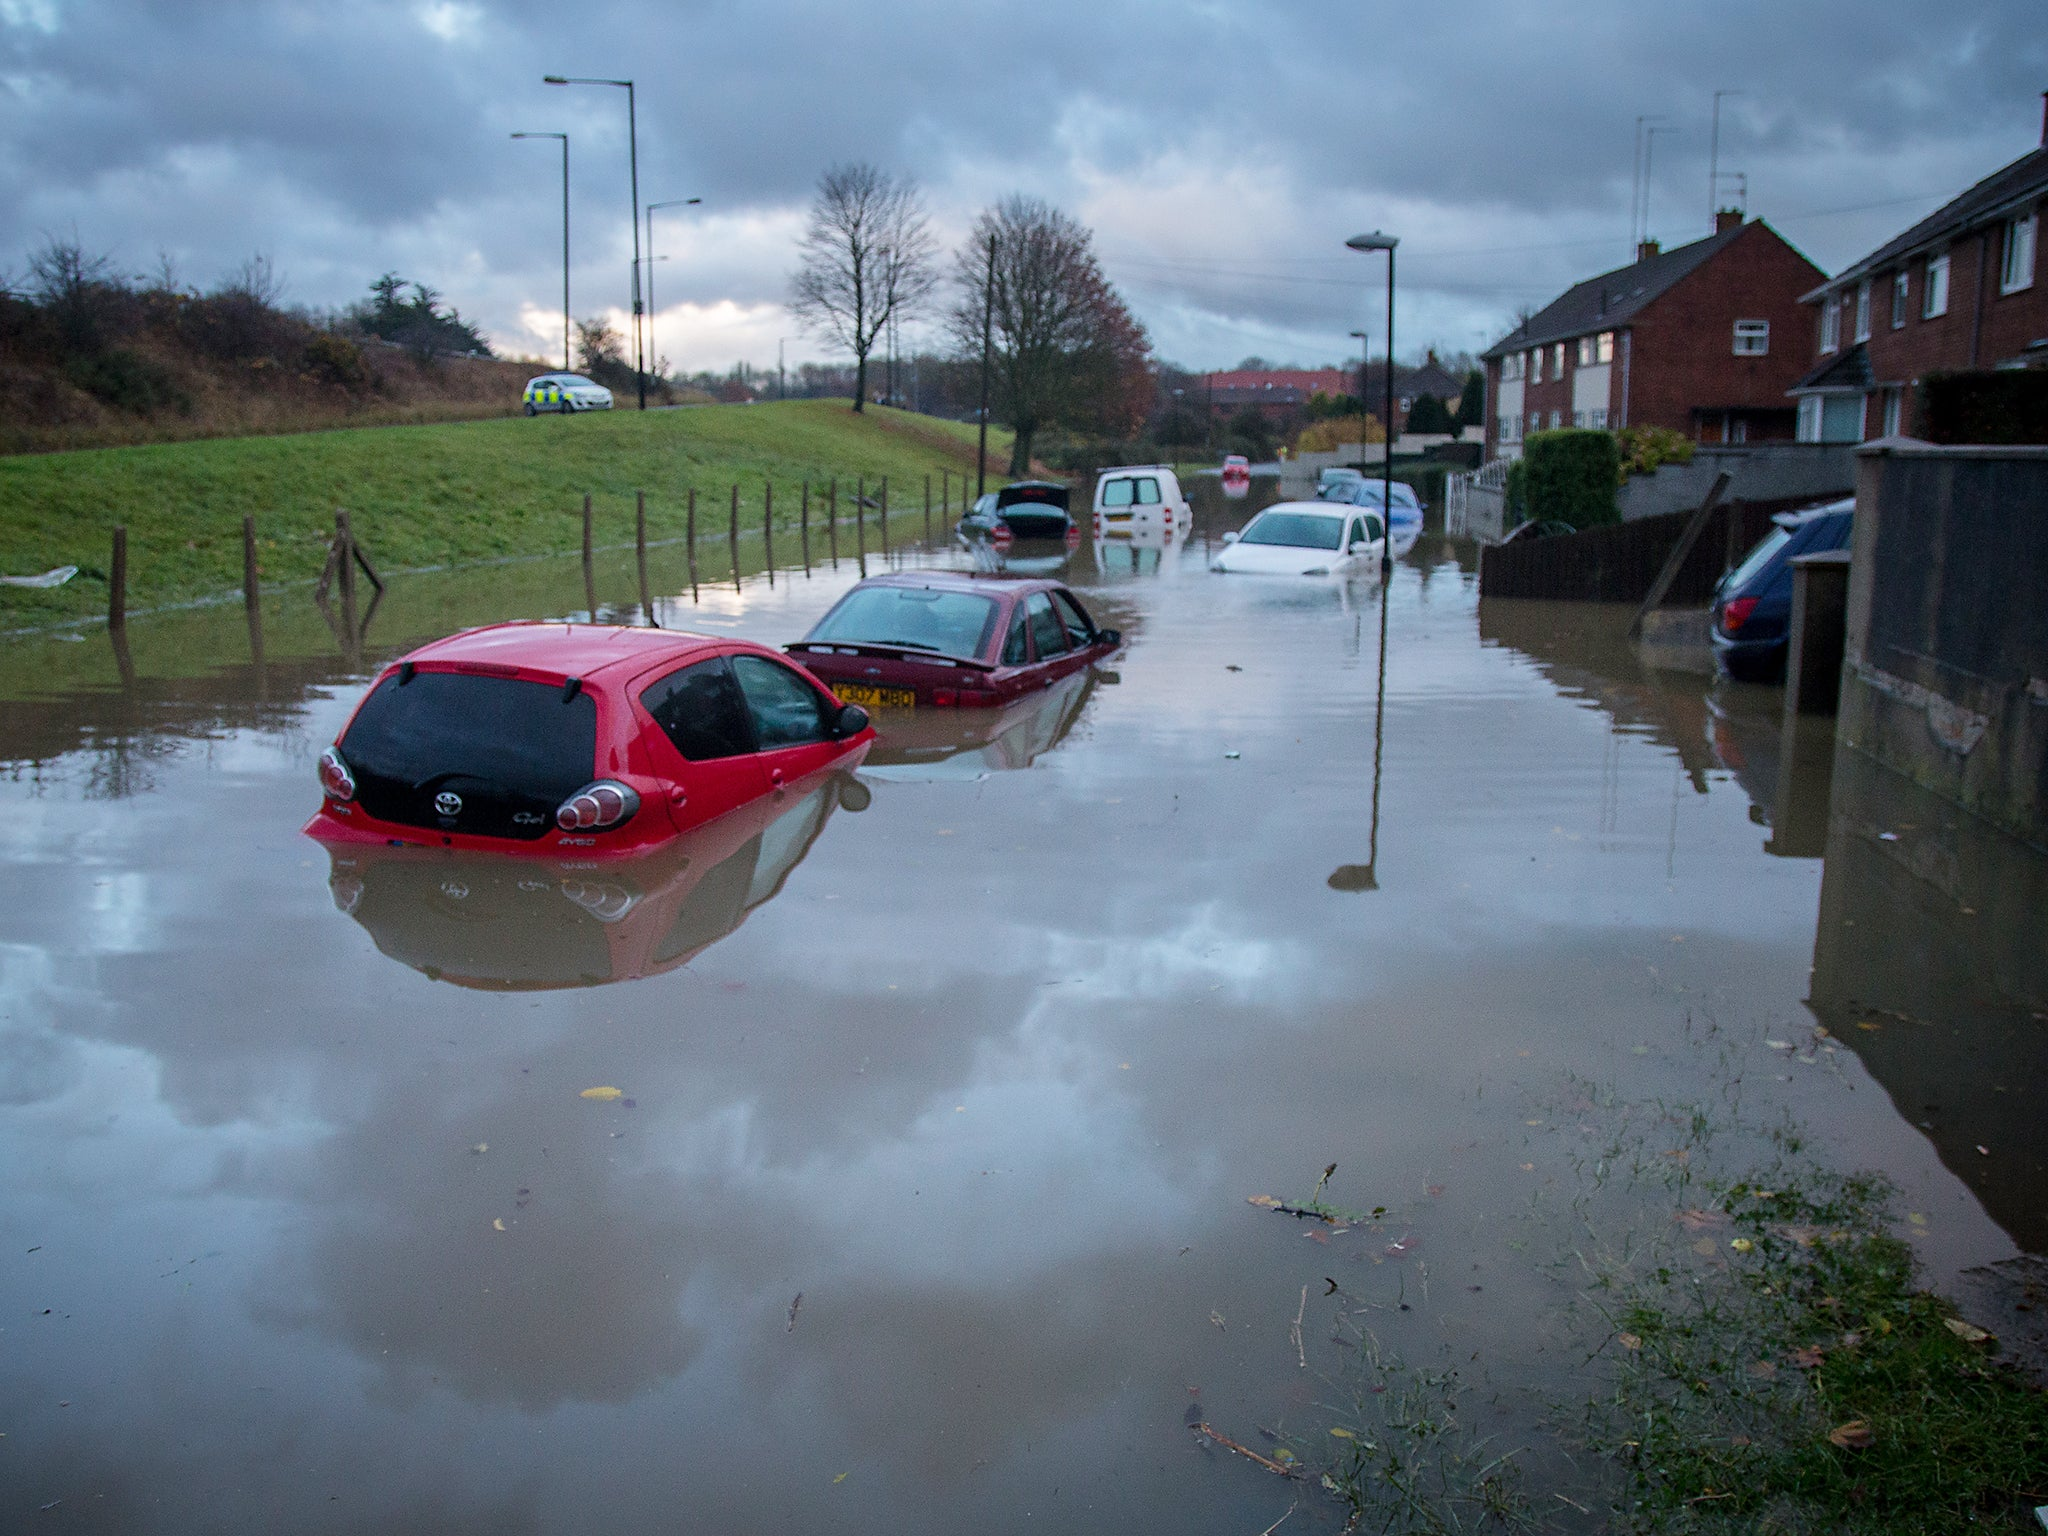 Government 'tried to bury' its own alarming report on climate change